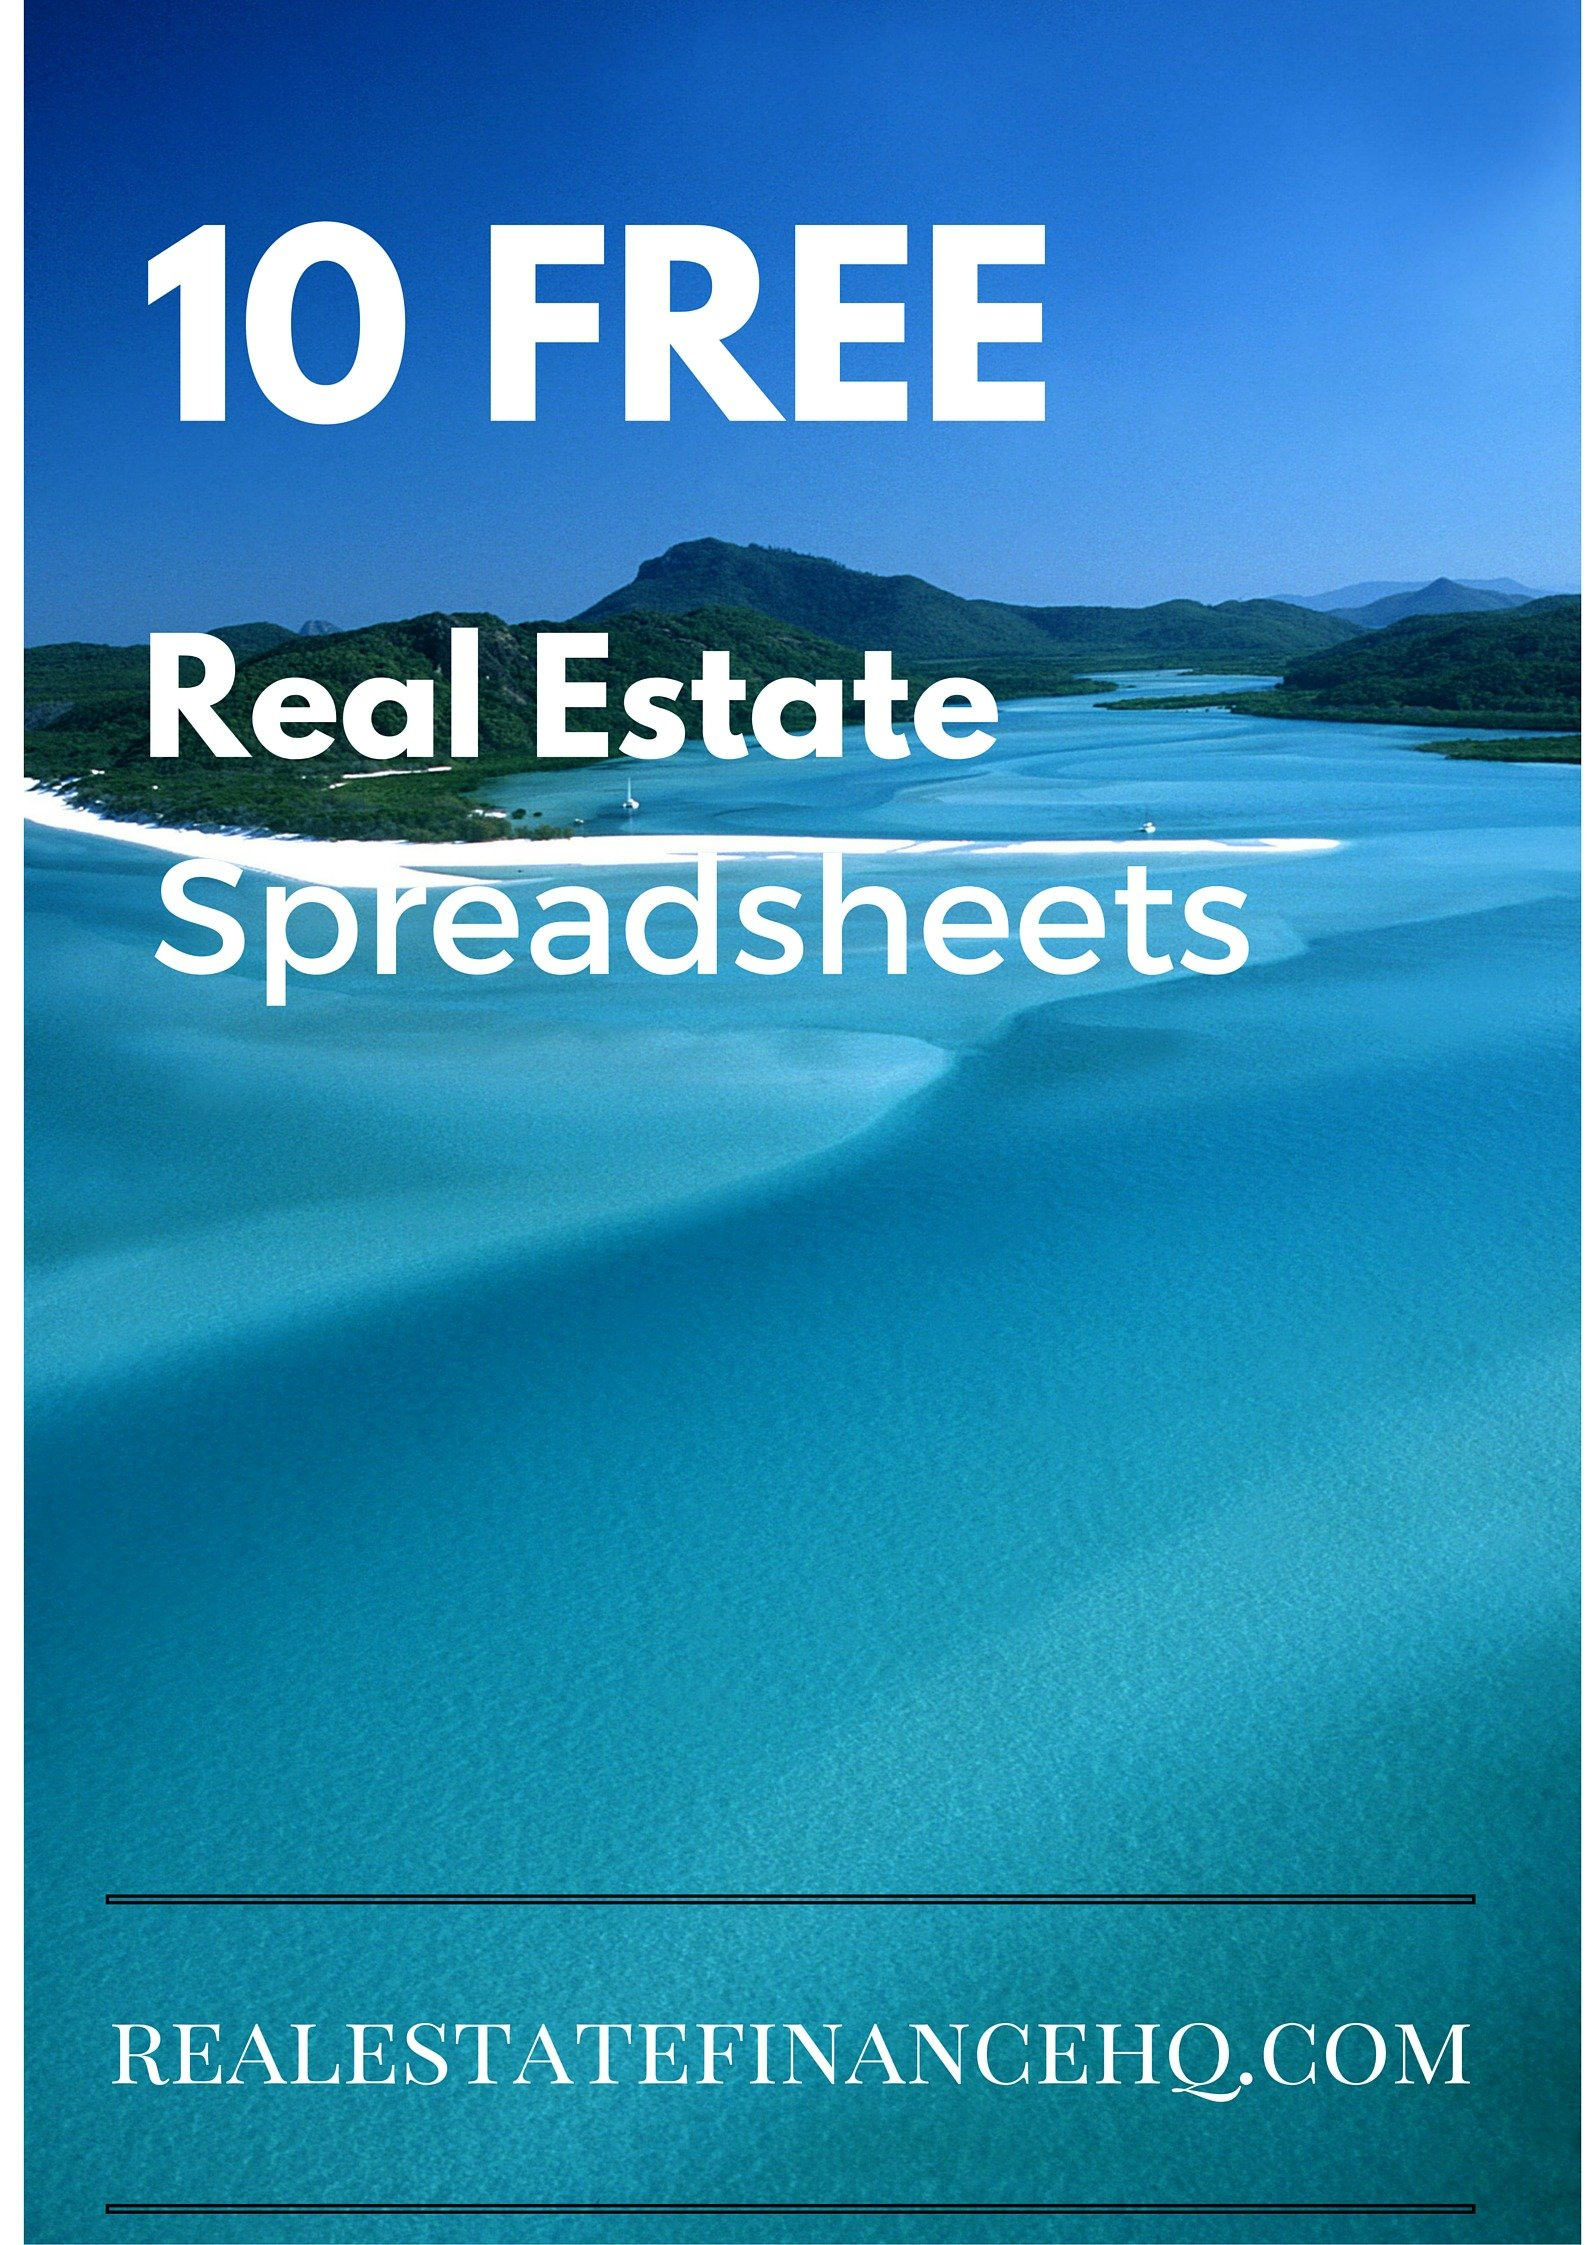 10 Free Real Estate Spreadsheets   Real Estate Finance And Commercial Real Estate Spreadsheet